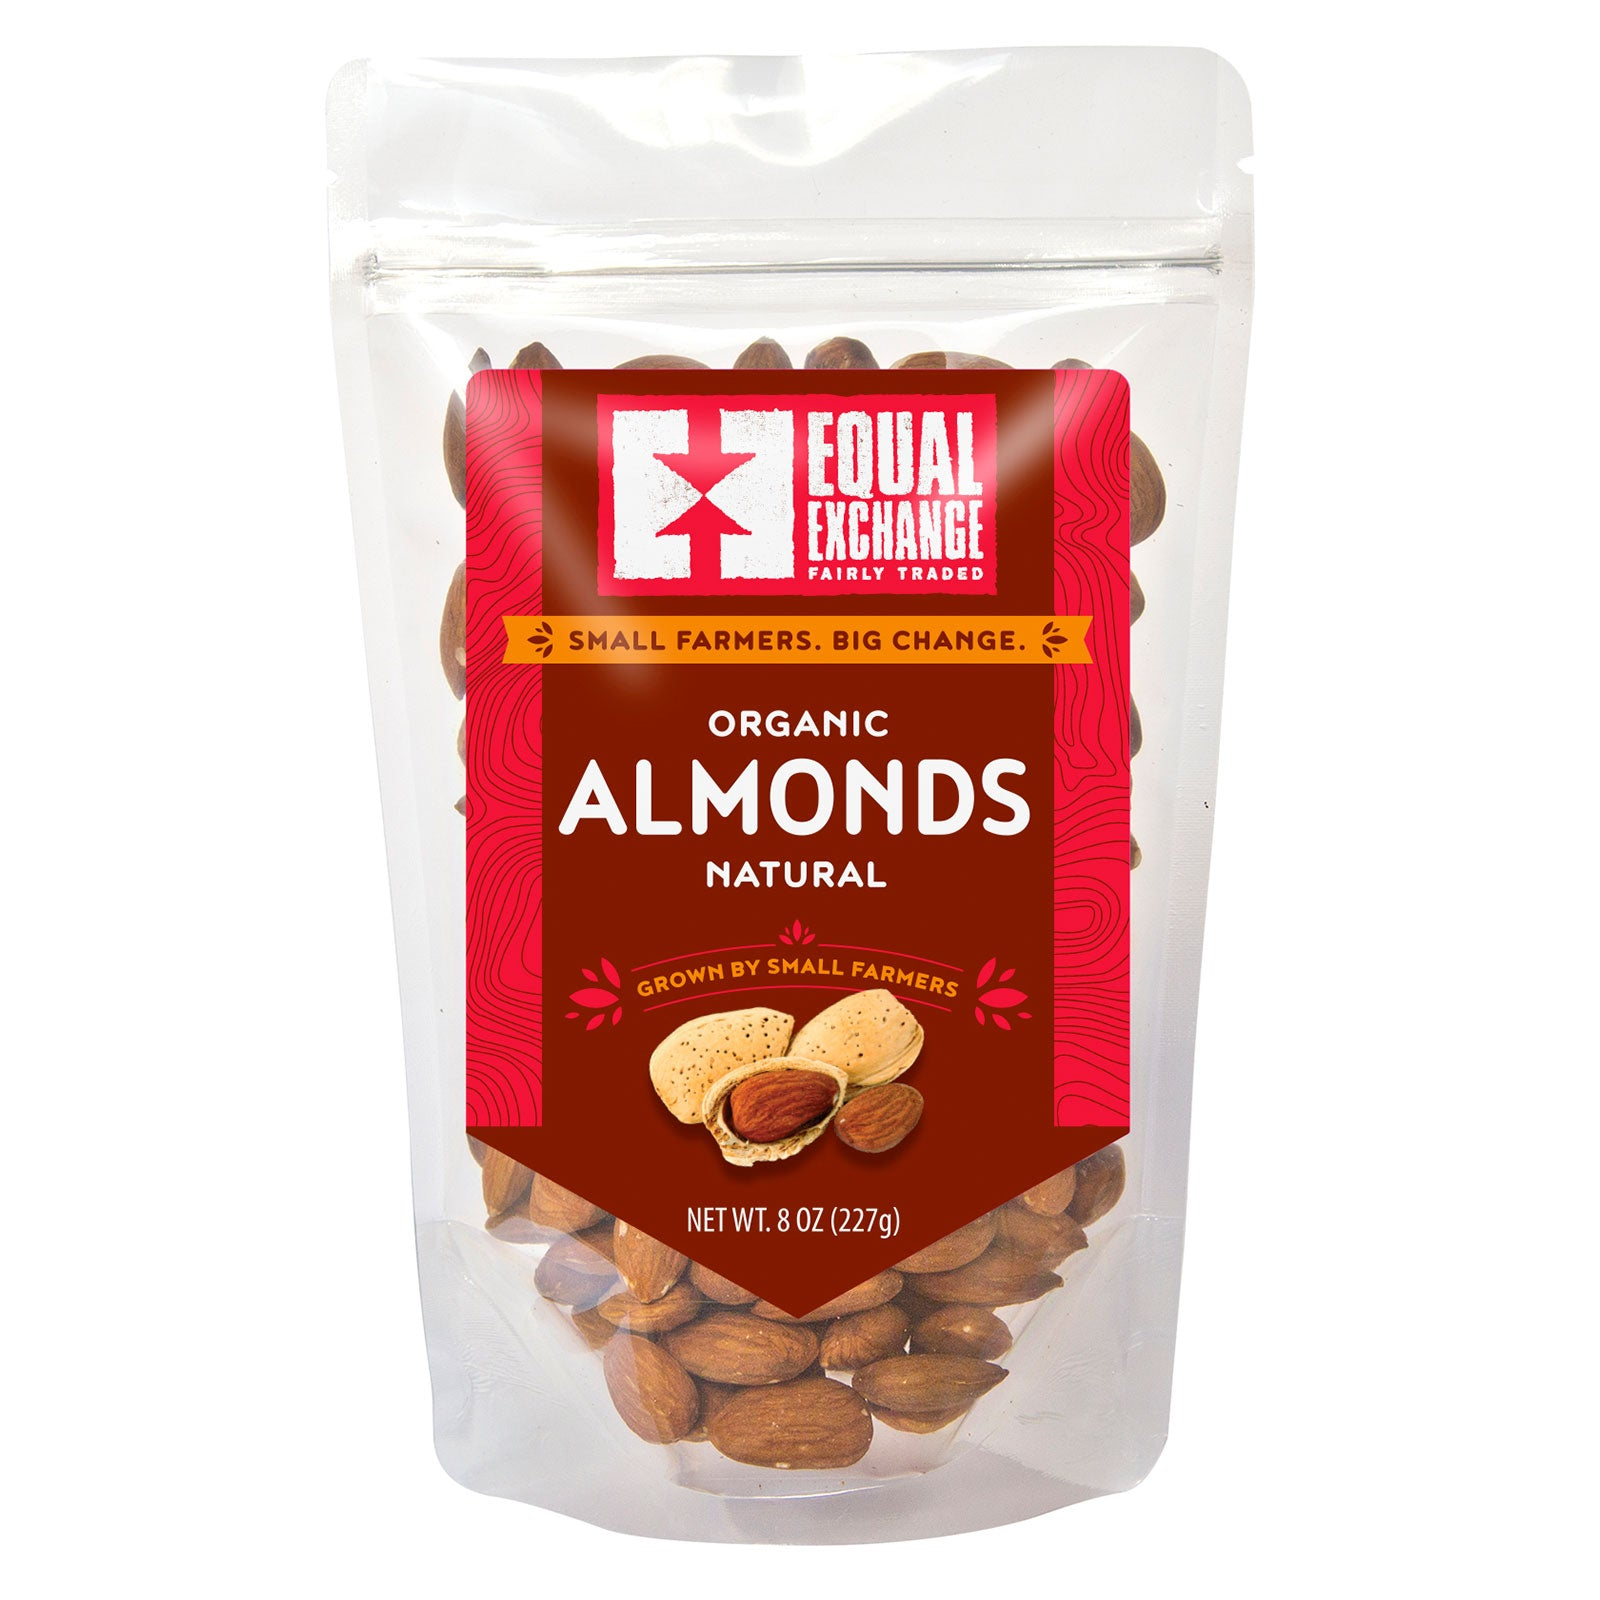 Equal Exchange Organic Natural Almonds package front